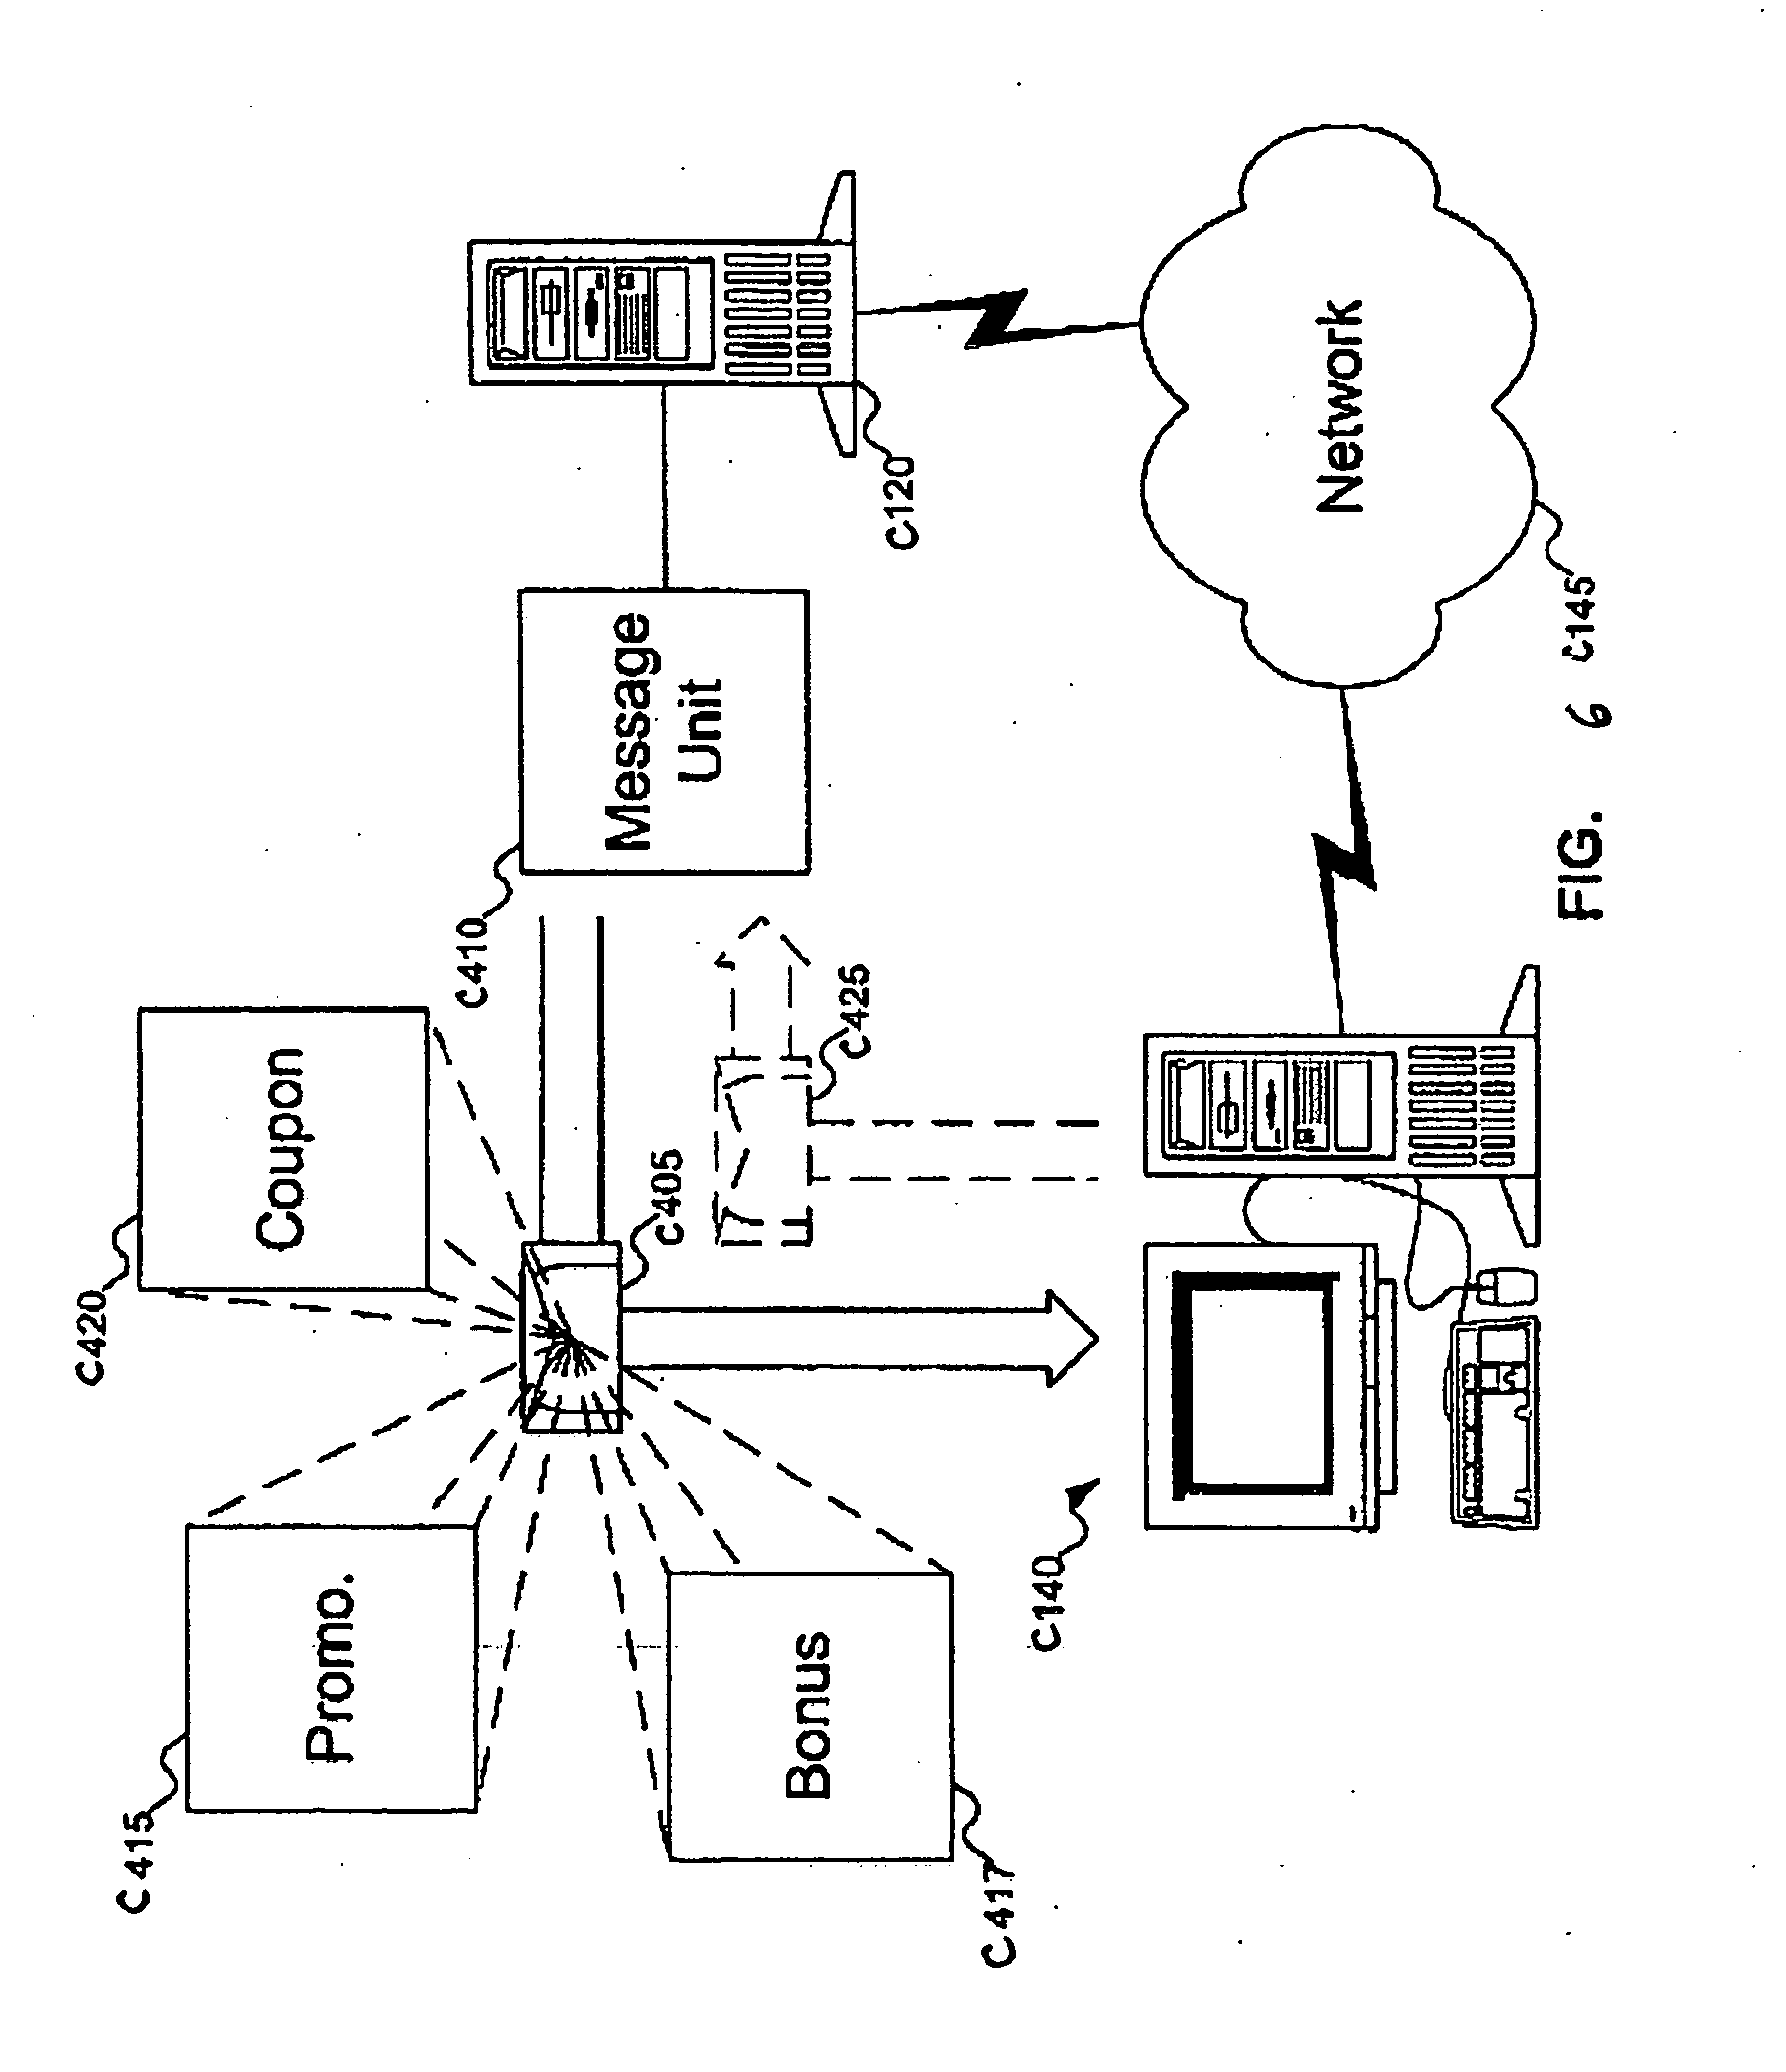 Patent Us20090029766 Amusement Gaming Access And Authorization Ground Monitor C120 Wiring Diagram Drawing